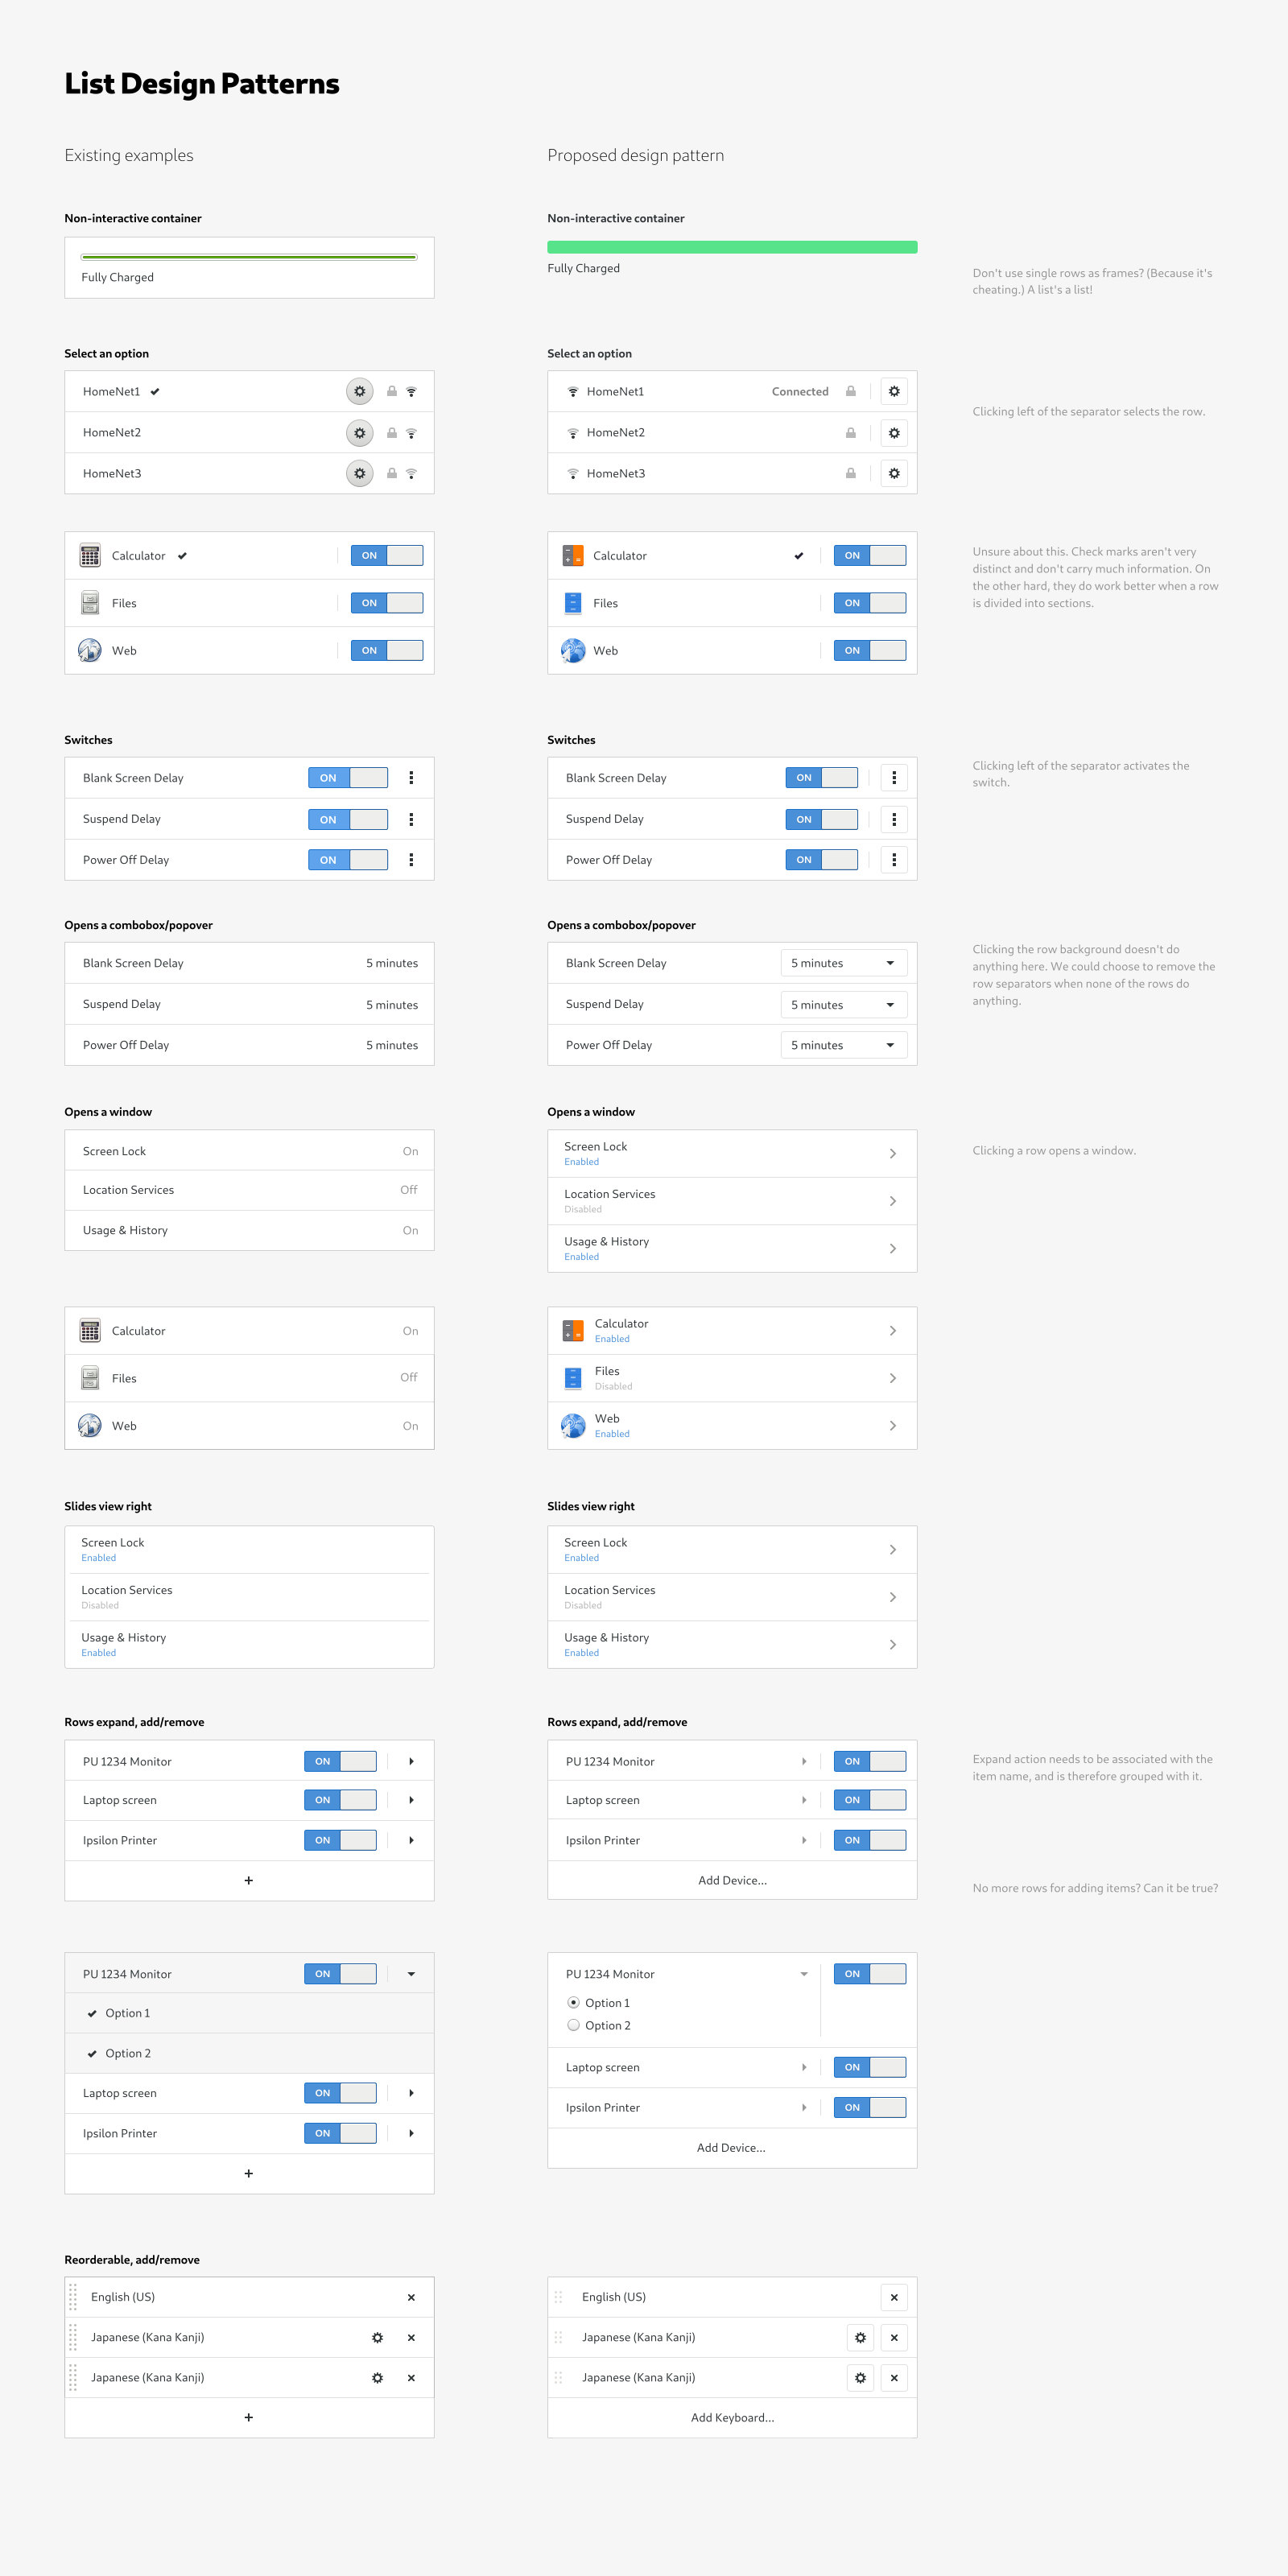 lists/list-design-patterns.png